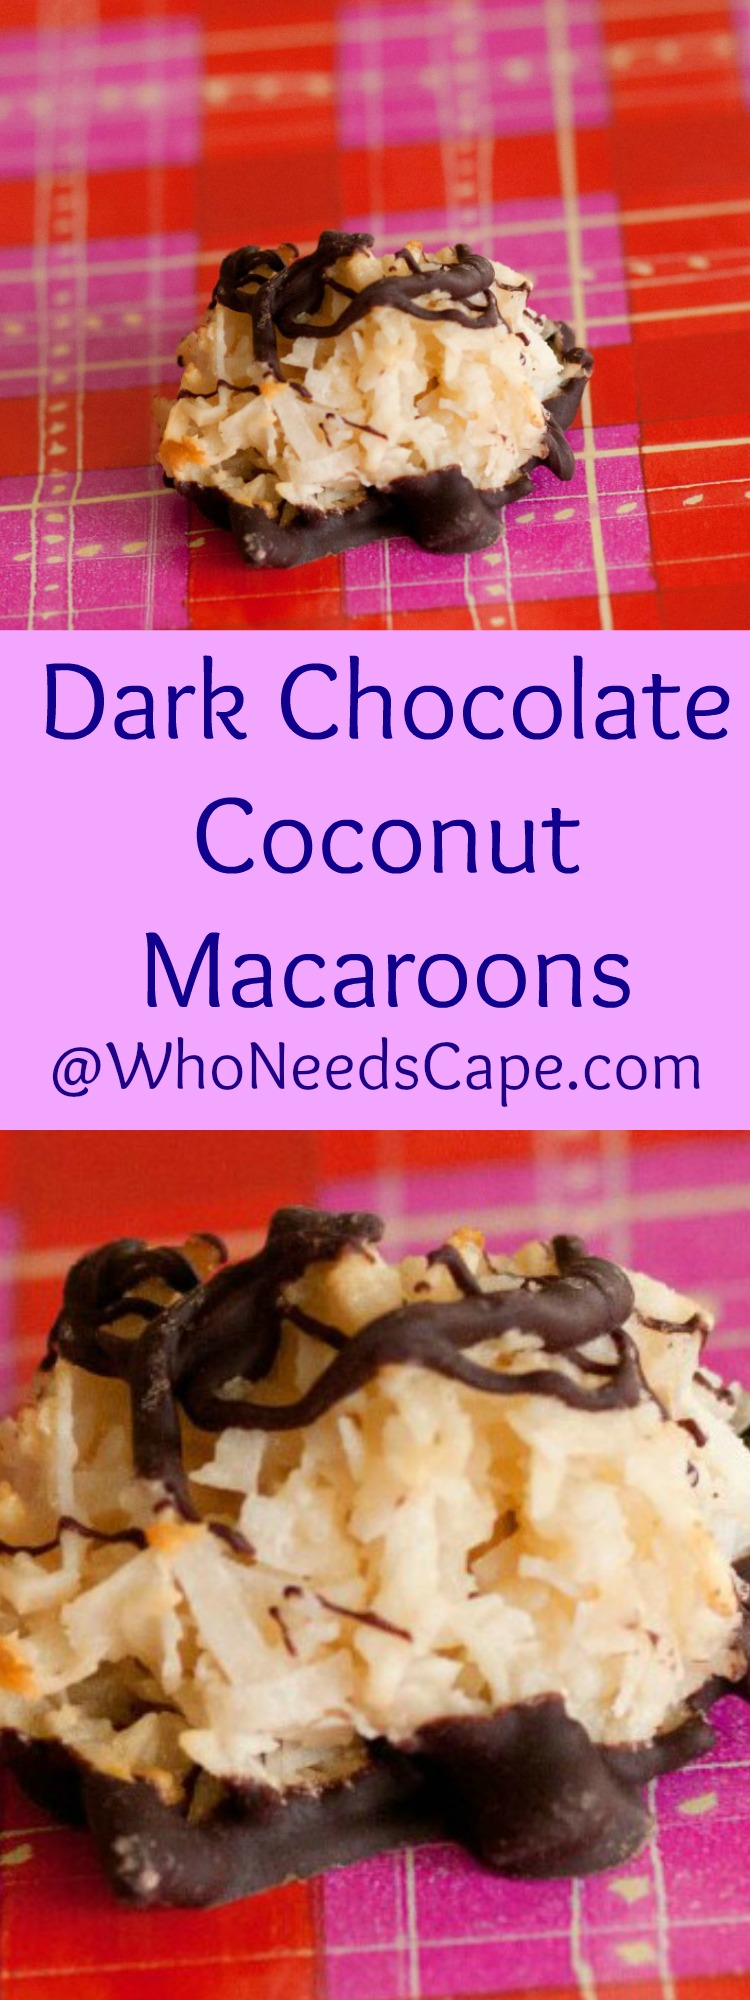 Dark Chocolate Coconut Macaroons are so delicious you're going to want to make them today!